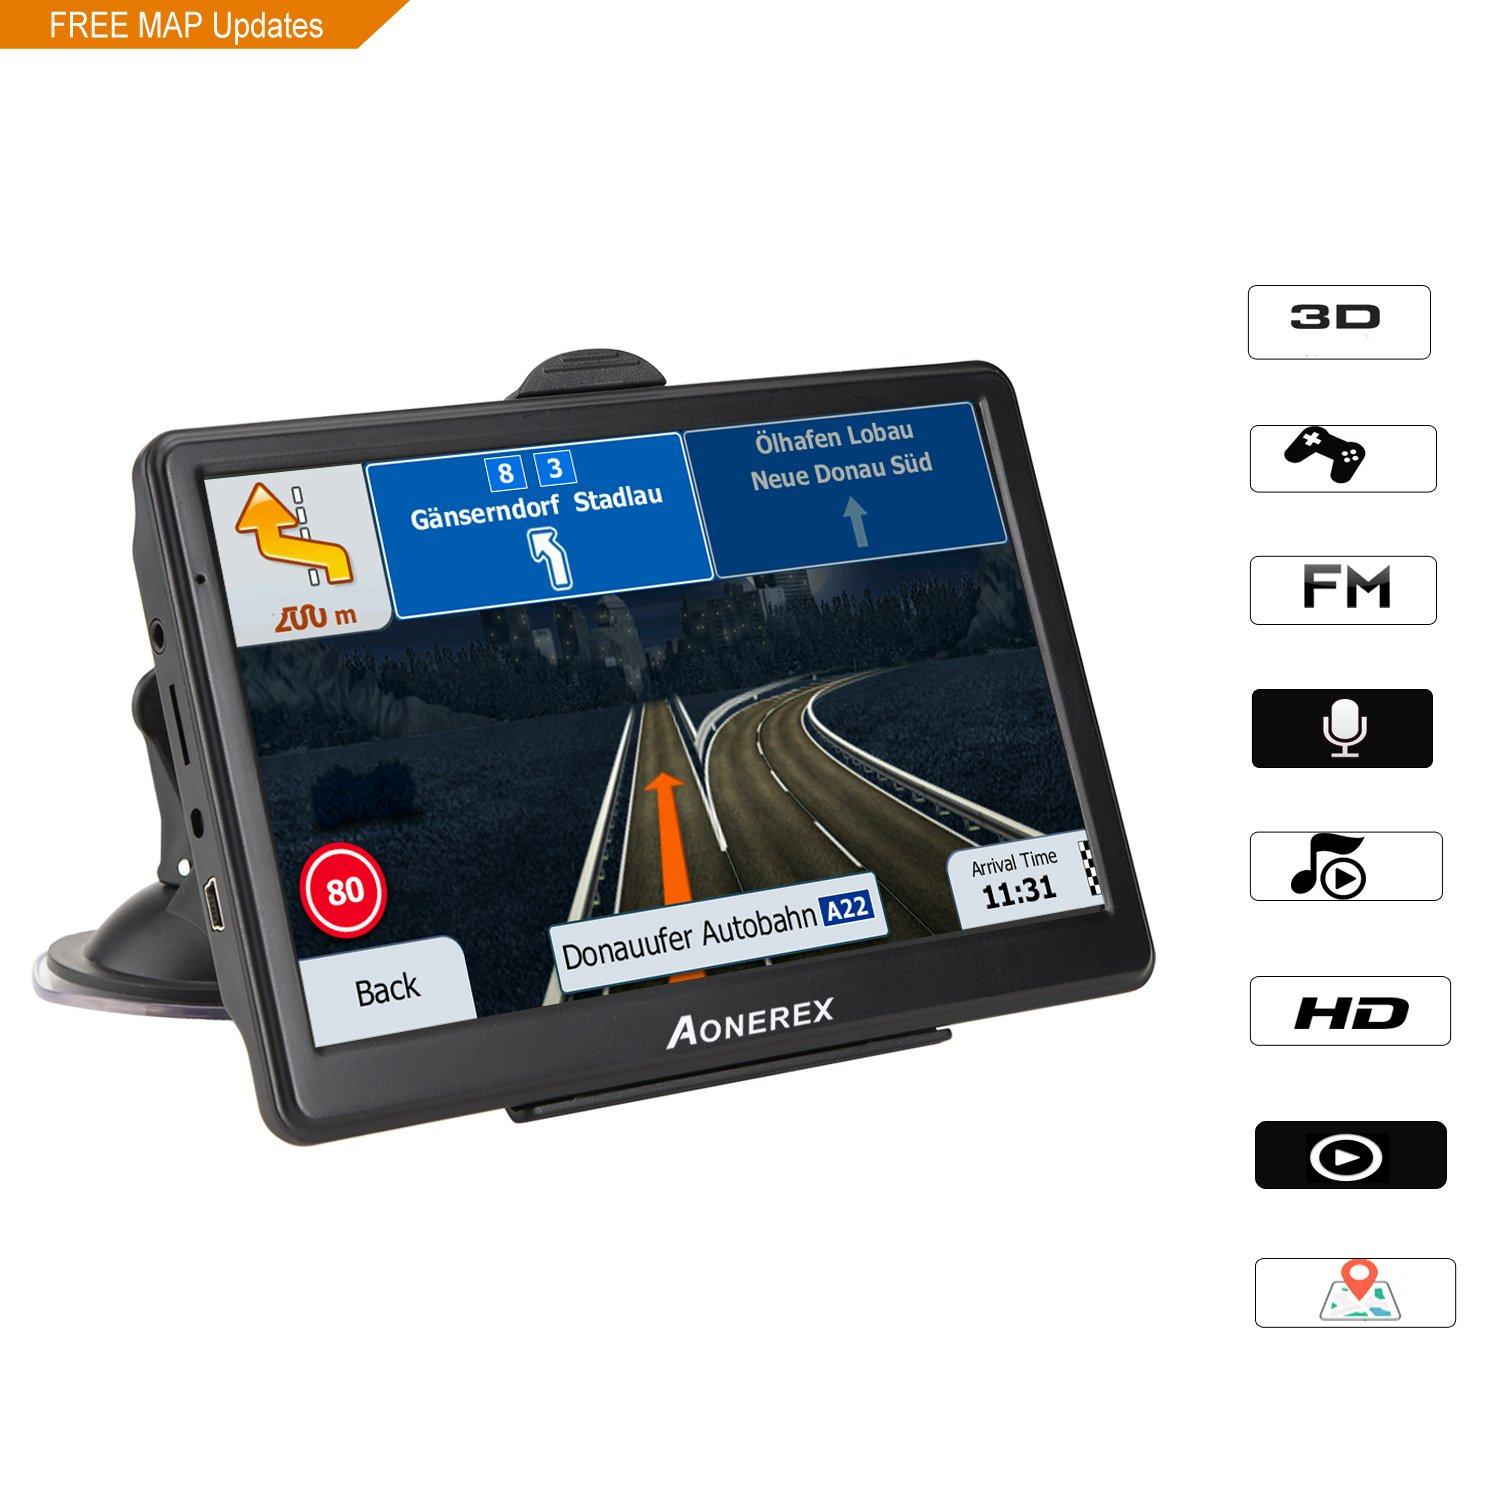 AONEREX, 7-inch 128MB-8GB HD display car satellite navigation system, built-in with Awning- lifetime free update map (black) by Aonerex